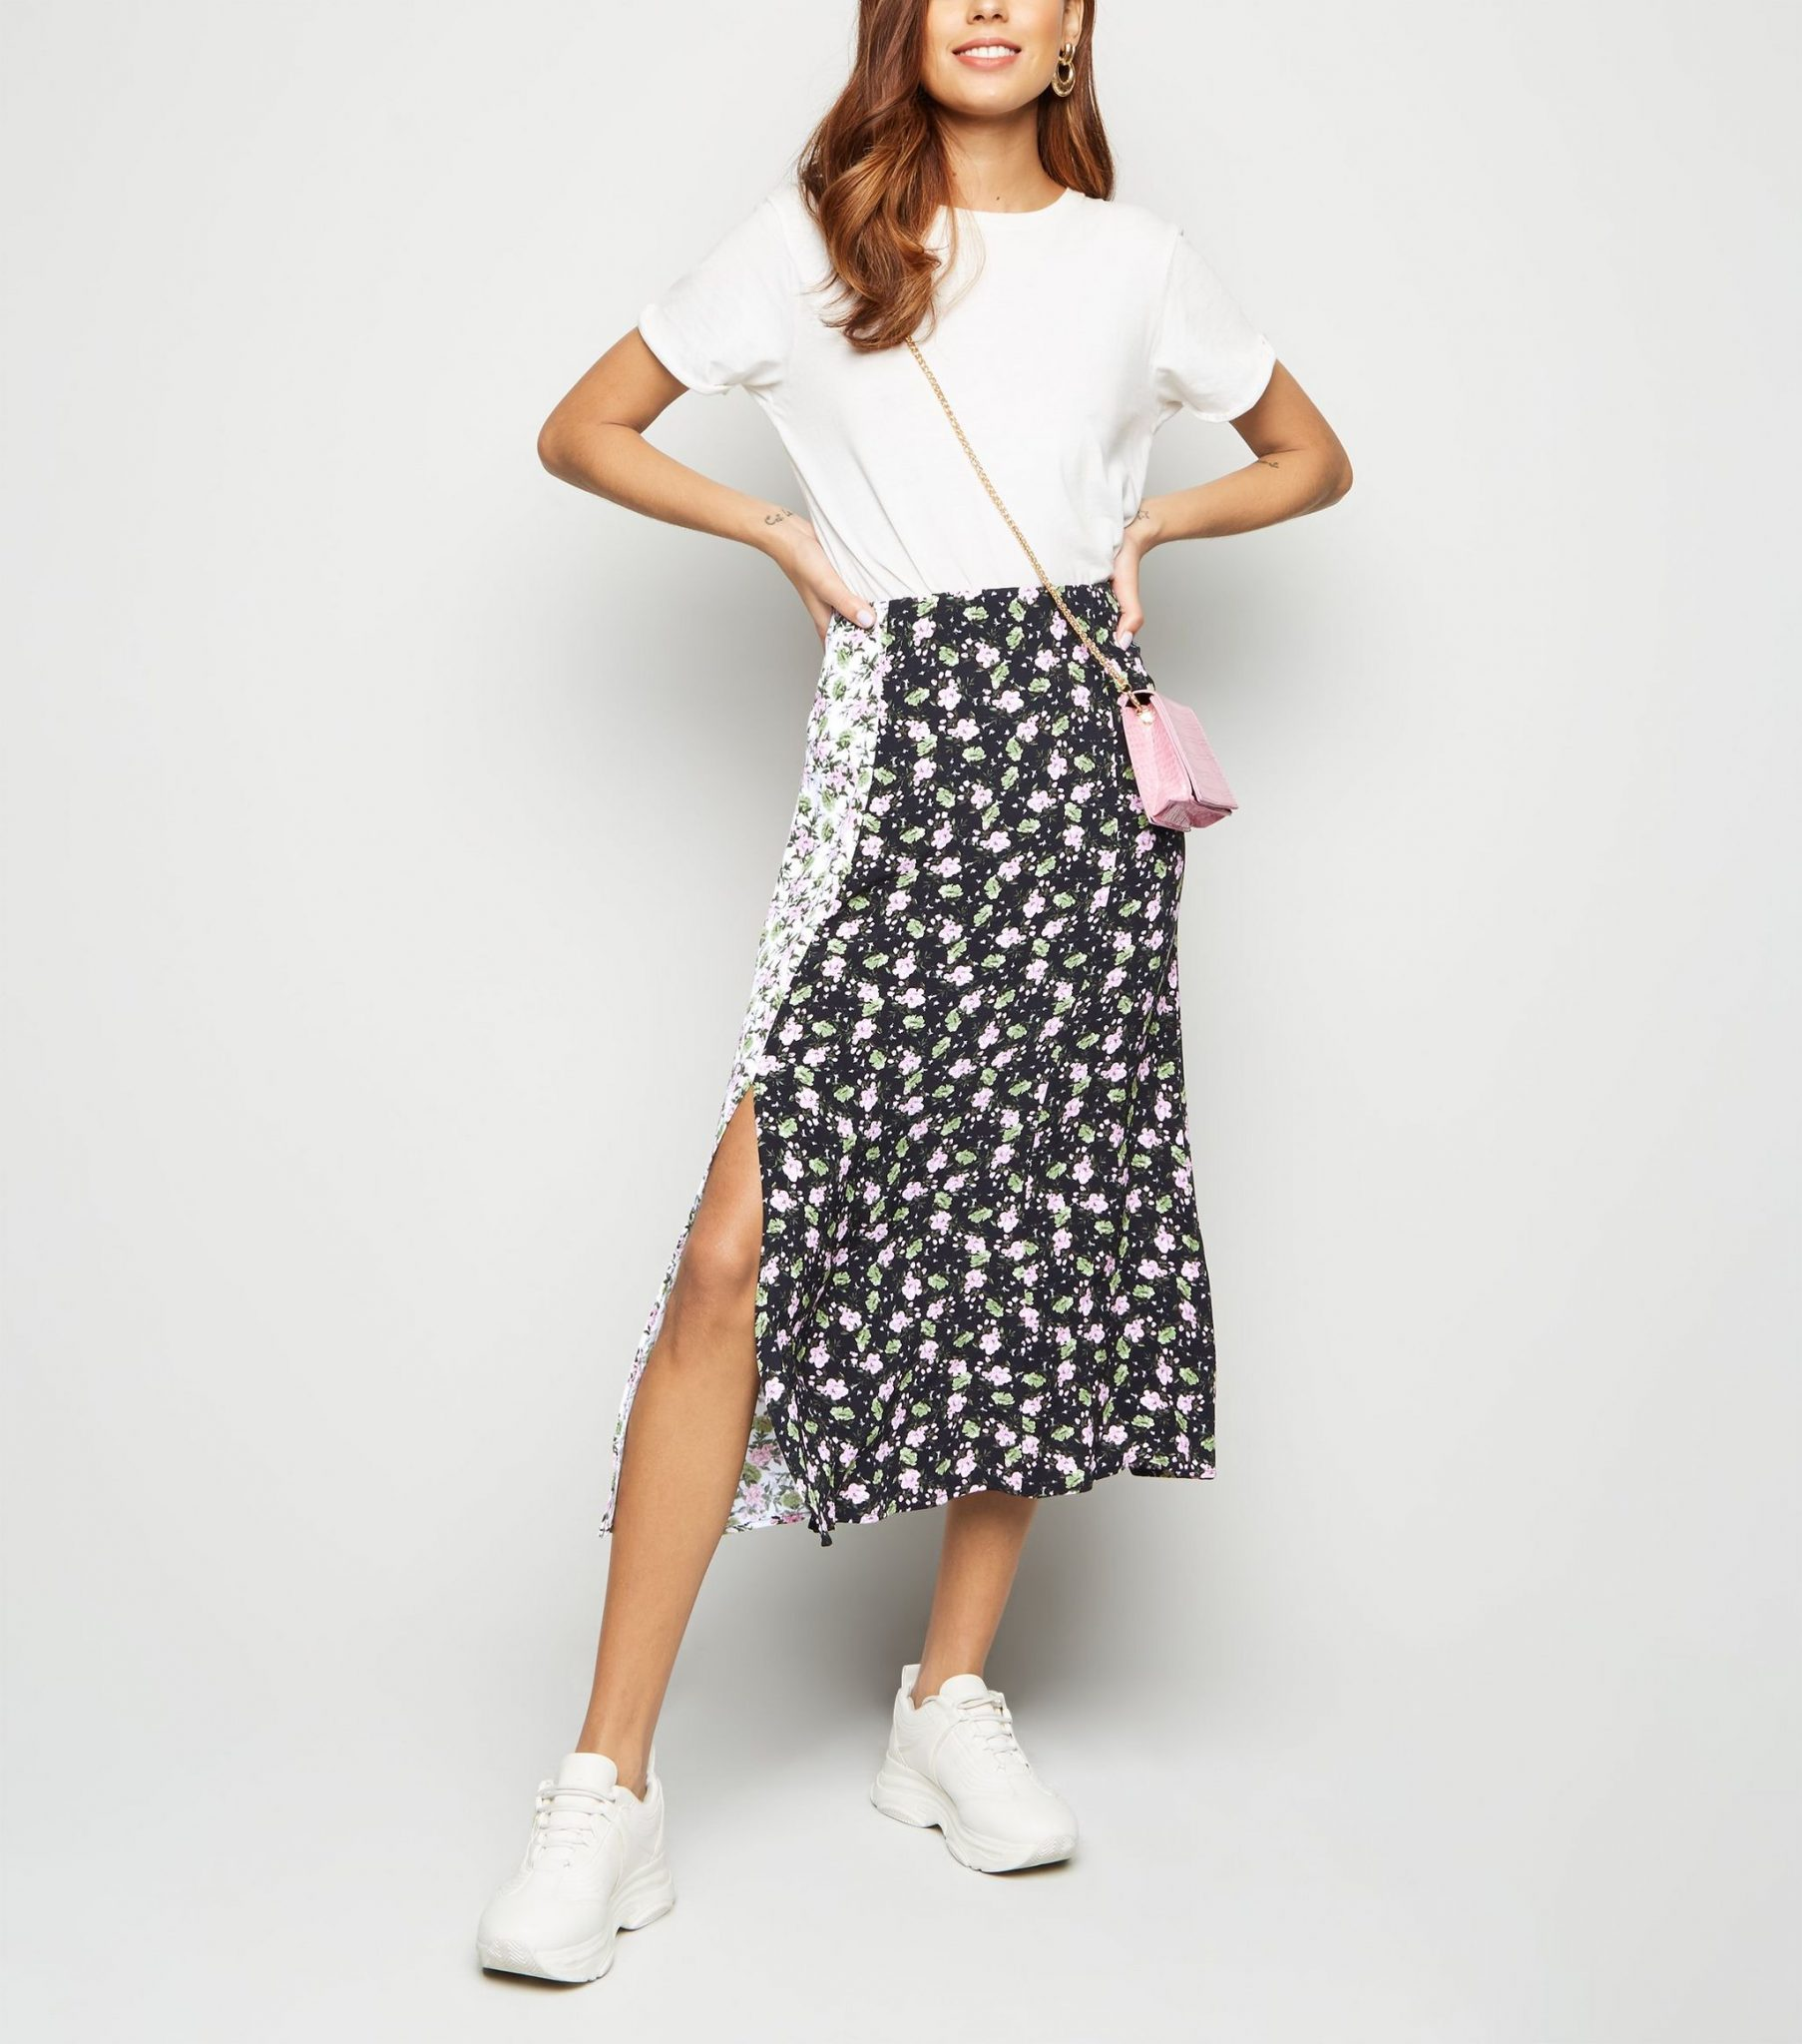 60497183d ... this €25 mixed floral print skirt from New Look, which we know is going  to be one for those pieces we'll be reaching for again and again this  spring.